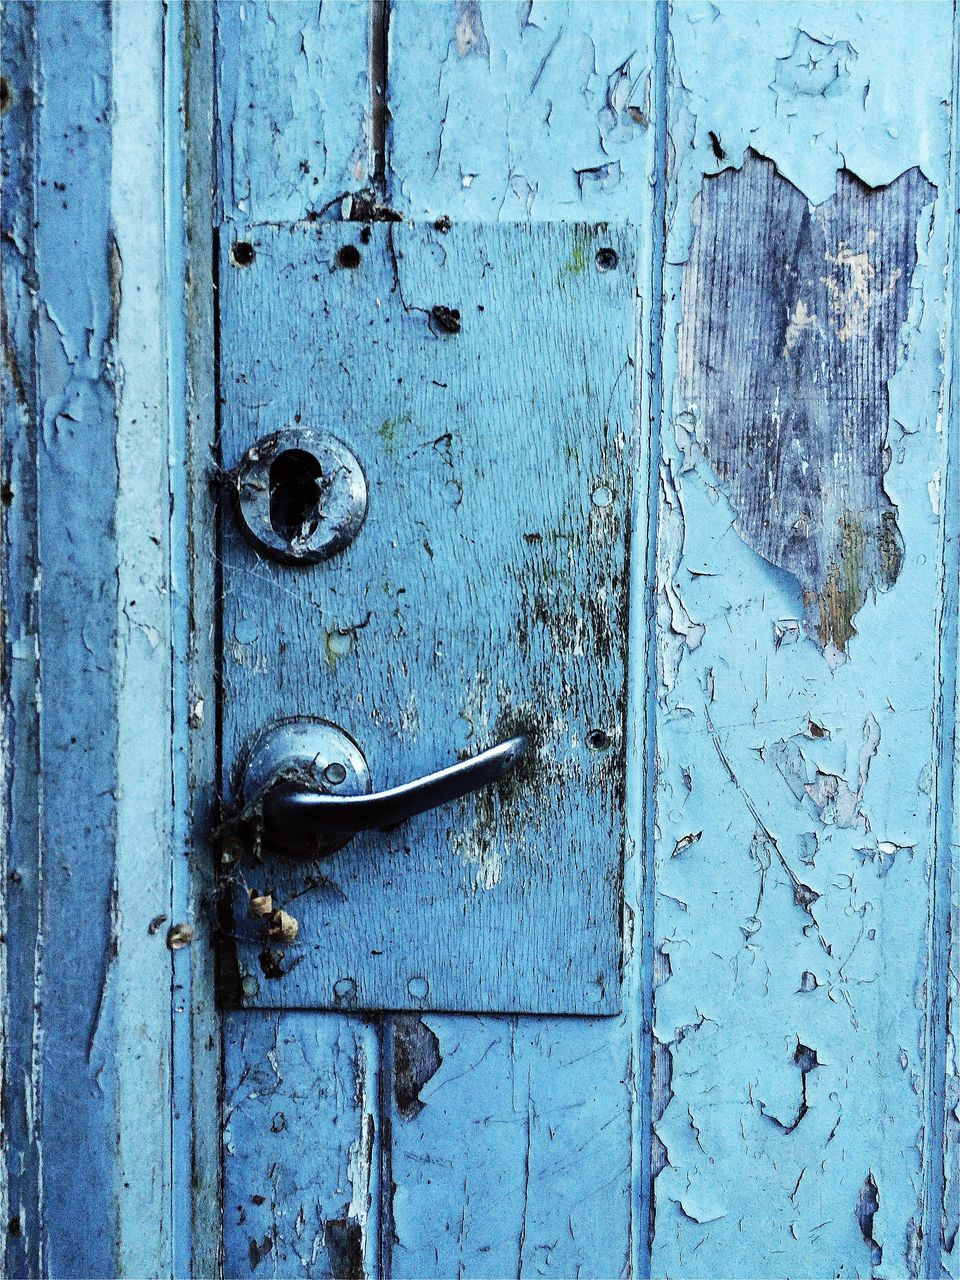 door, closed, wood - material, protection, close-up, safety, old, blue, door handle, no people, latch, outdoors, full frame, day, old-fashioned